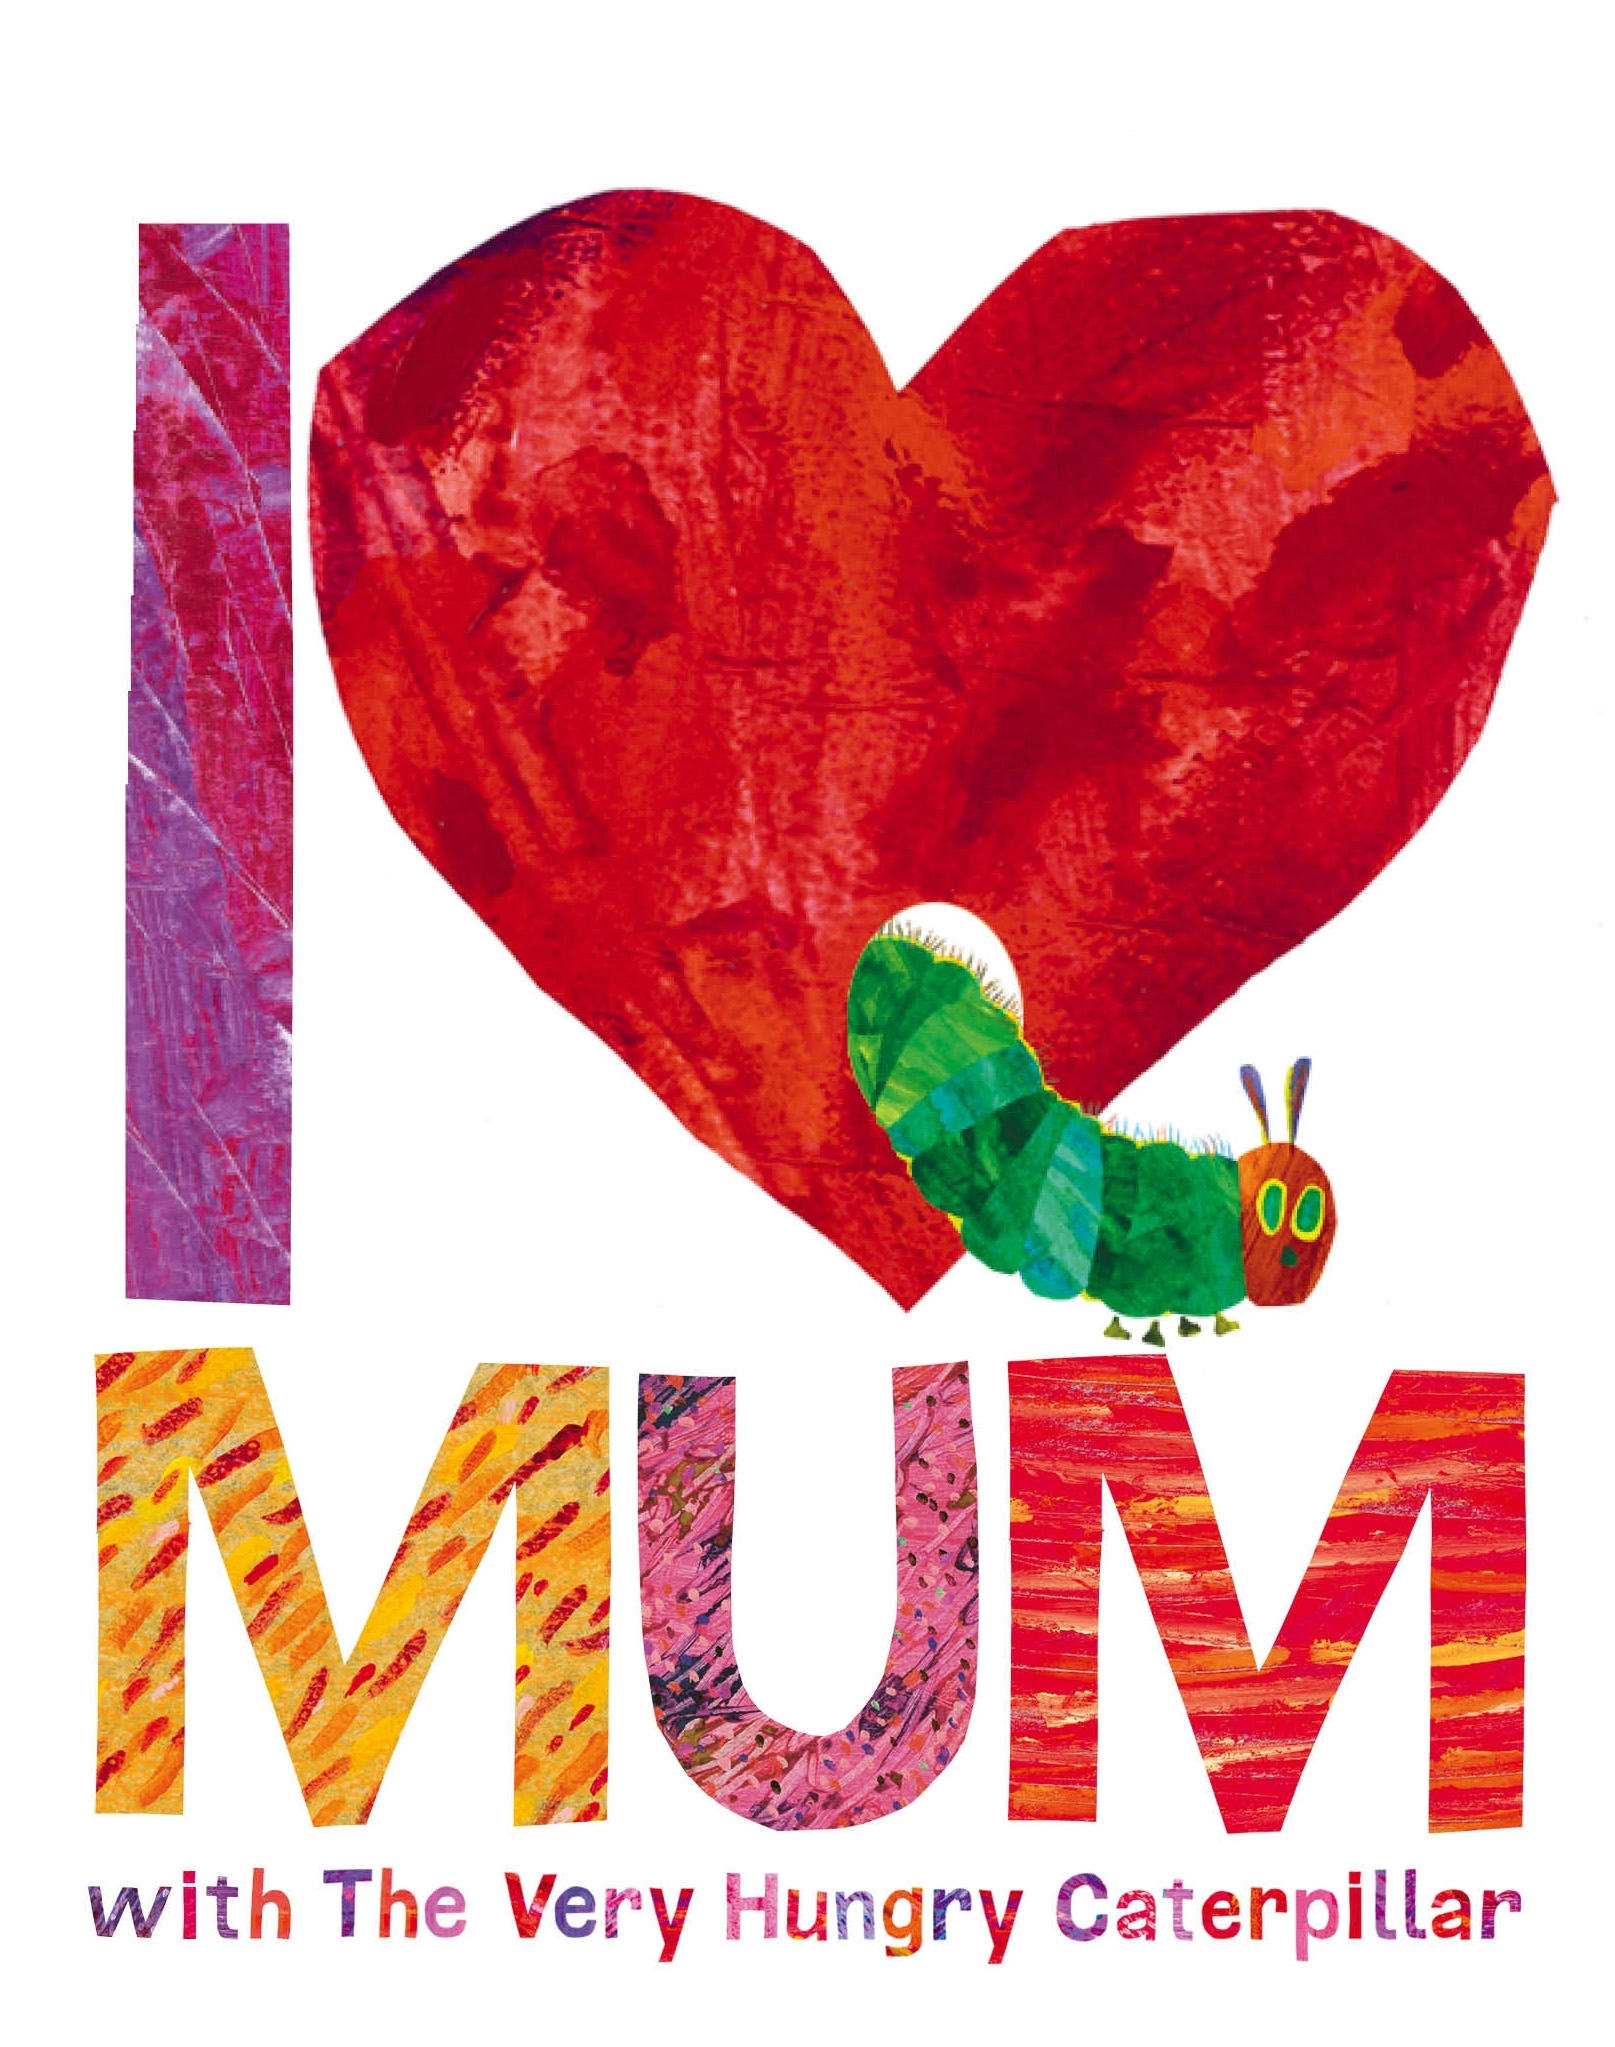 I Love Mum with The Very Hungry Caterpillar by Eric Carle, ISBN: 9780141363905